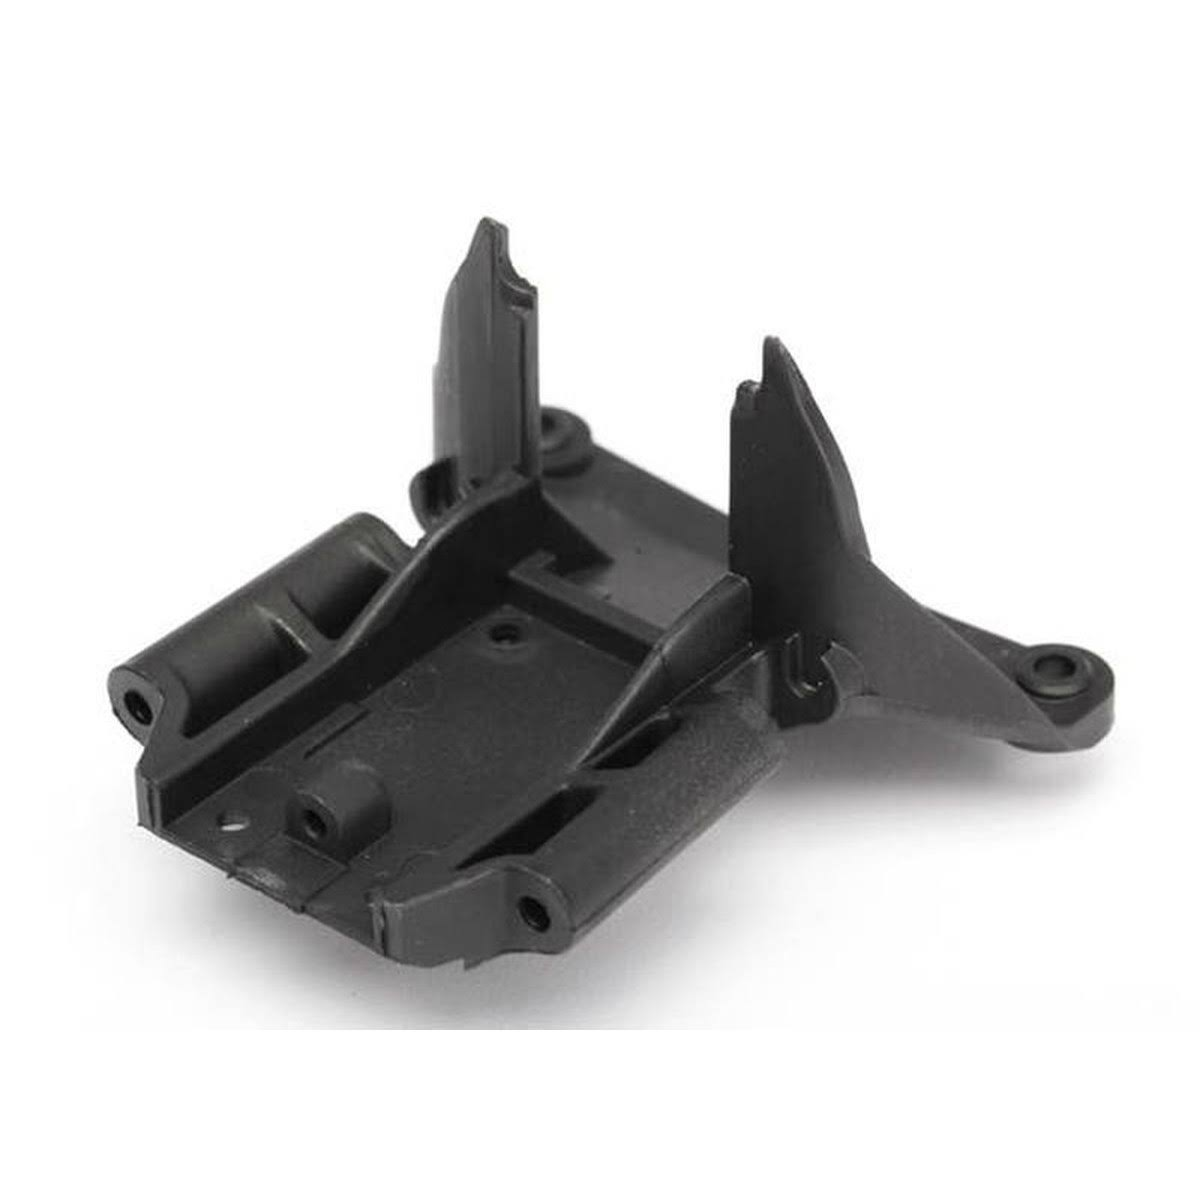 Traxxas Bulkhead Rear Rally - 1/10 scale, Black